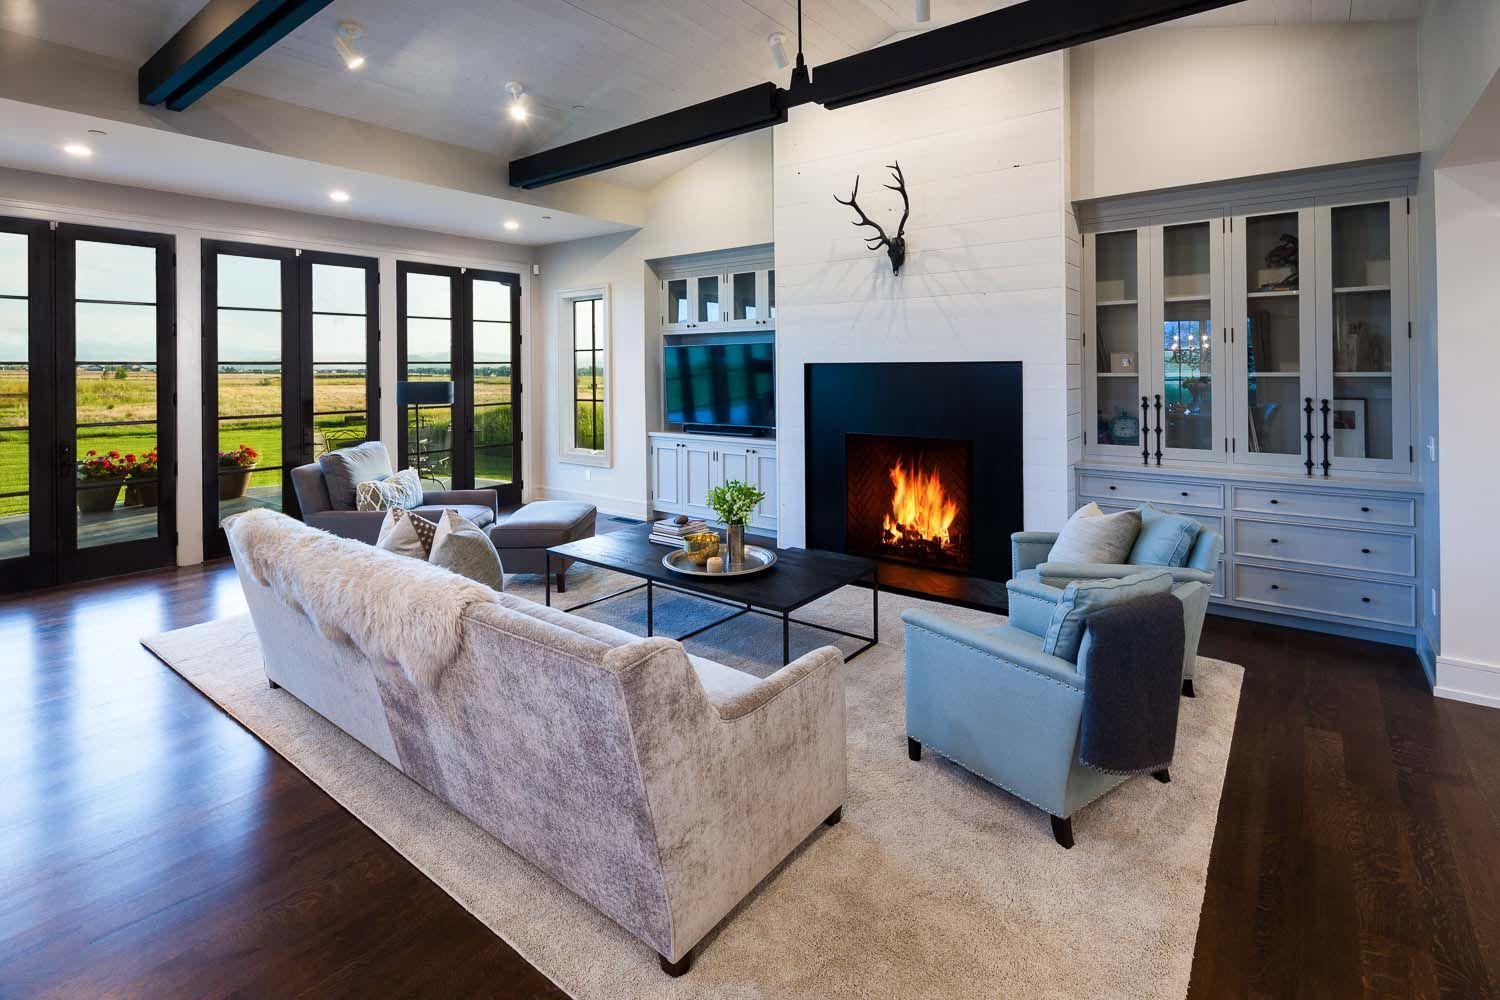 Modern Farmhouse In Montana With Surprising Details